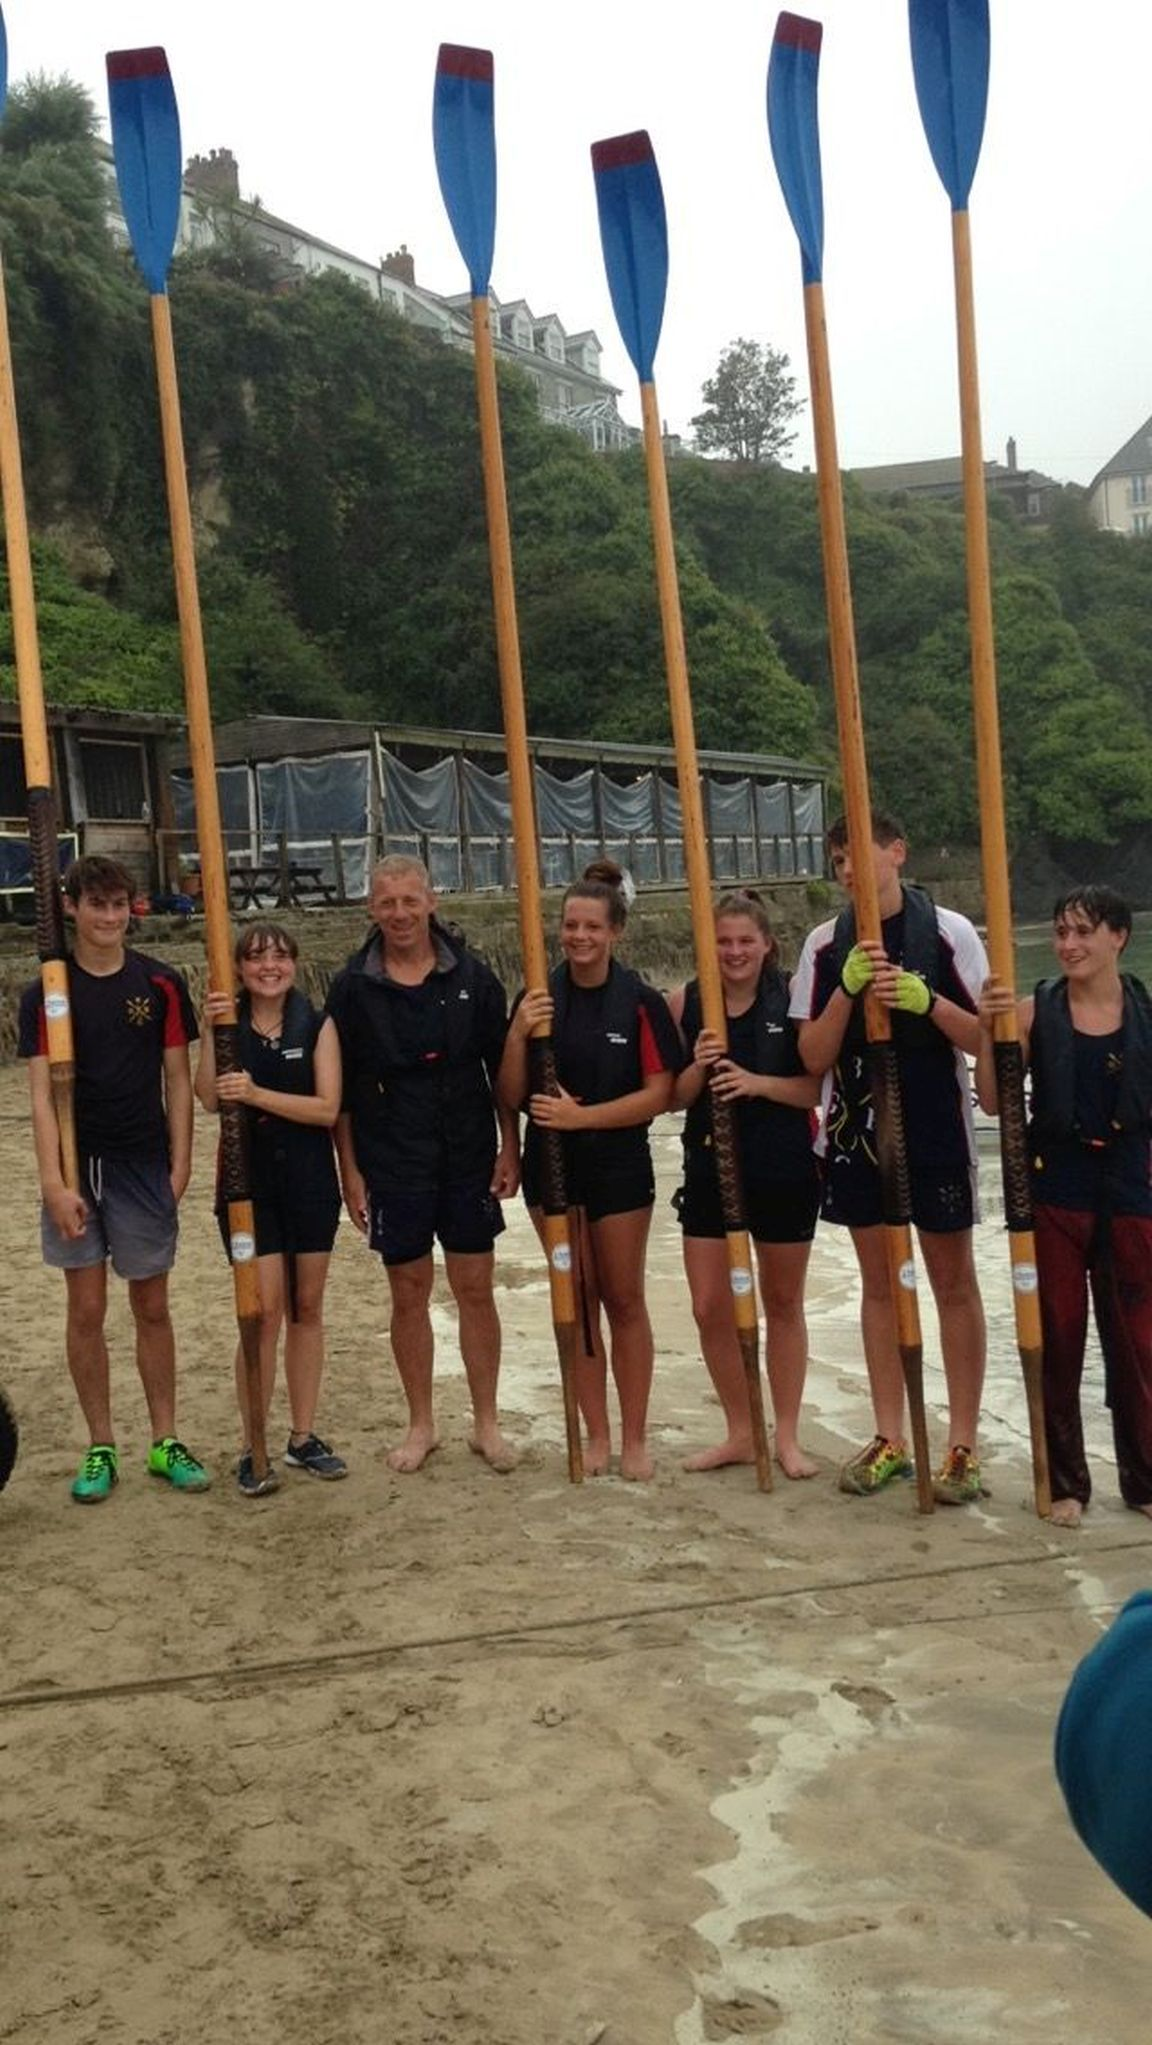 OAR-SOME; Bridport Juniors finished sixth at the Newquay County Championships. Right to left: Ellis Blackburn, Essie Stone, cox Kevin Batchelor, Libby Beecham, Sally Carruthers, Tim Girling and Josh Hamblett-Edwards. Picture:  GemmaSmith